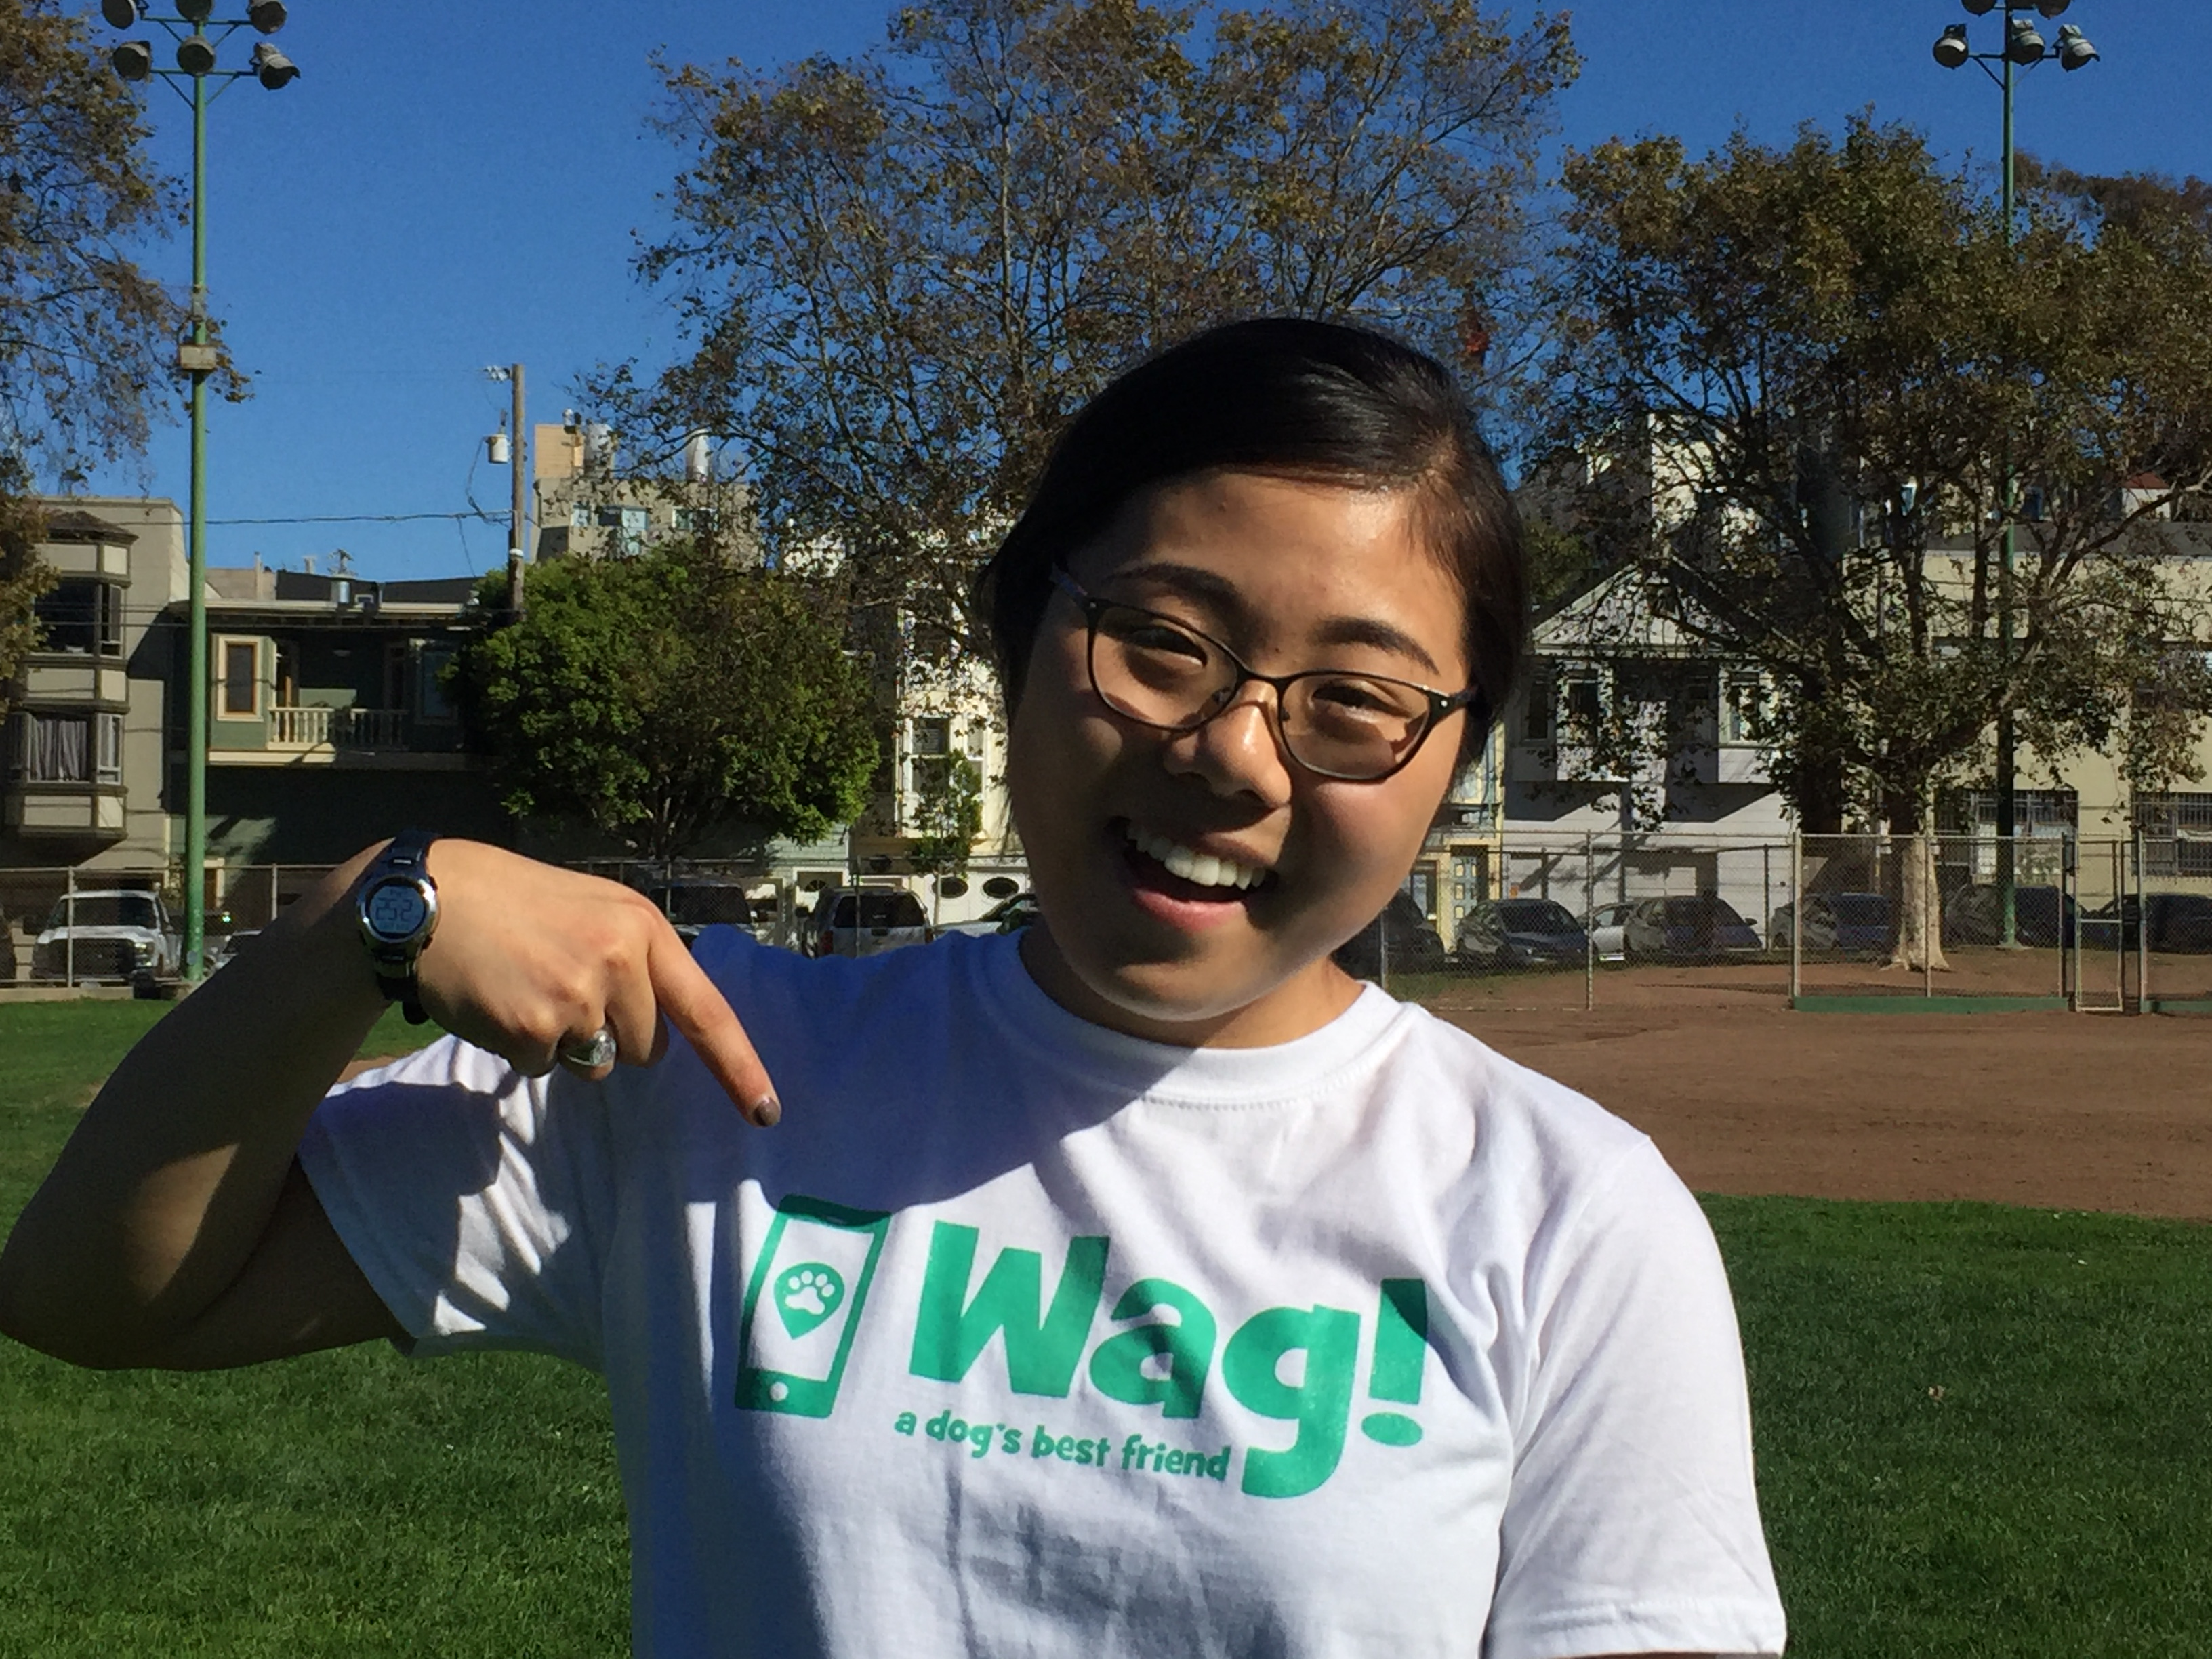 SF, Lone Mountain Dog Walker and Dog Sitter 4